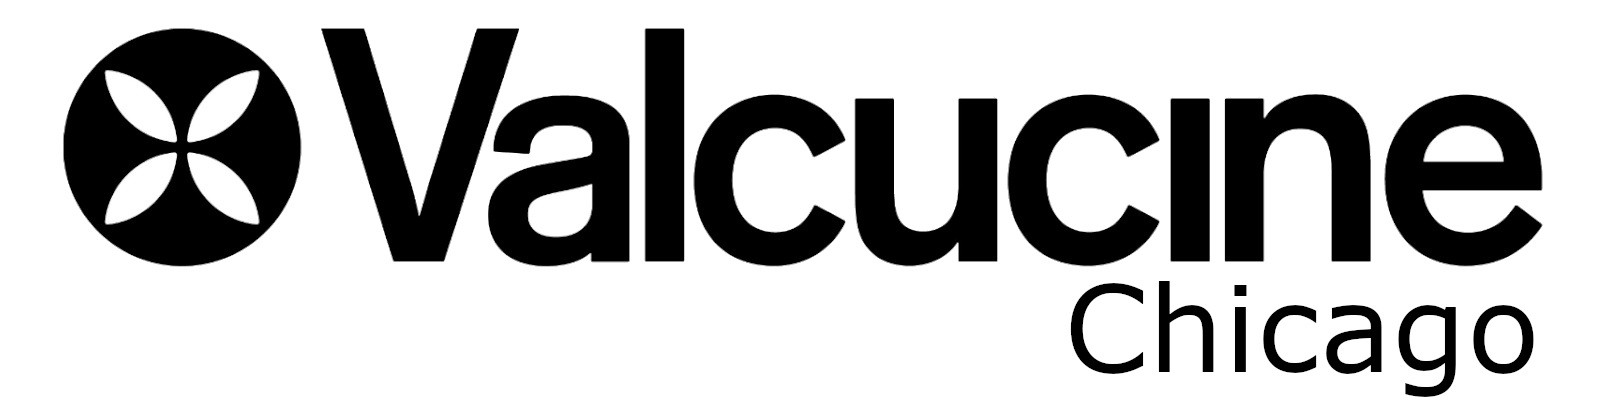 Valcucine Chicago logo